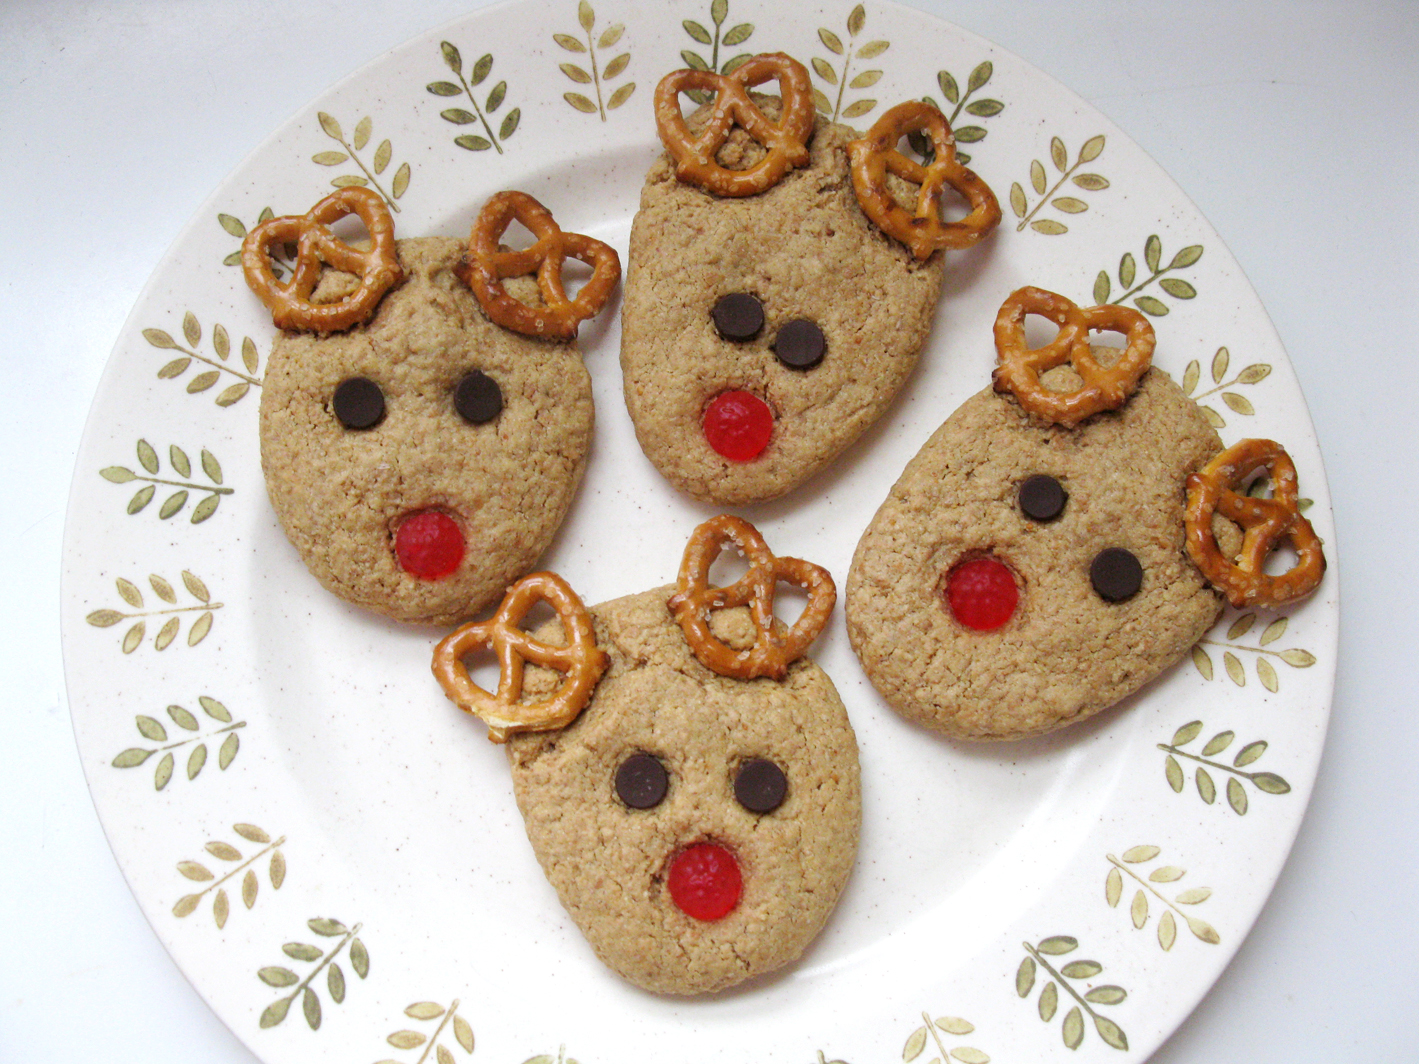 These Reindeer Cookies are without a doubt always the cutest cookies on the holiday cookie platter! Santa wonamp39t be able to resist these on Christmas Eveand neither will your little and big elves!